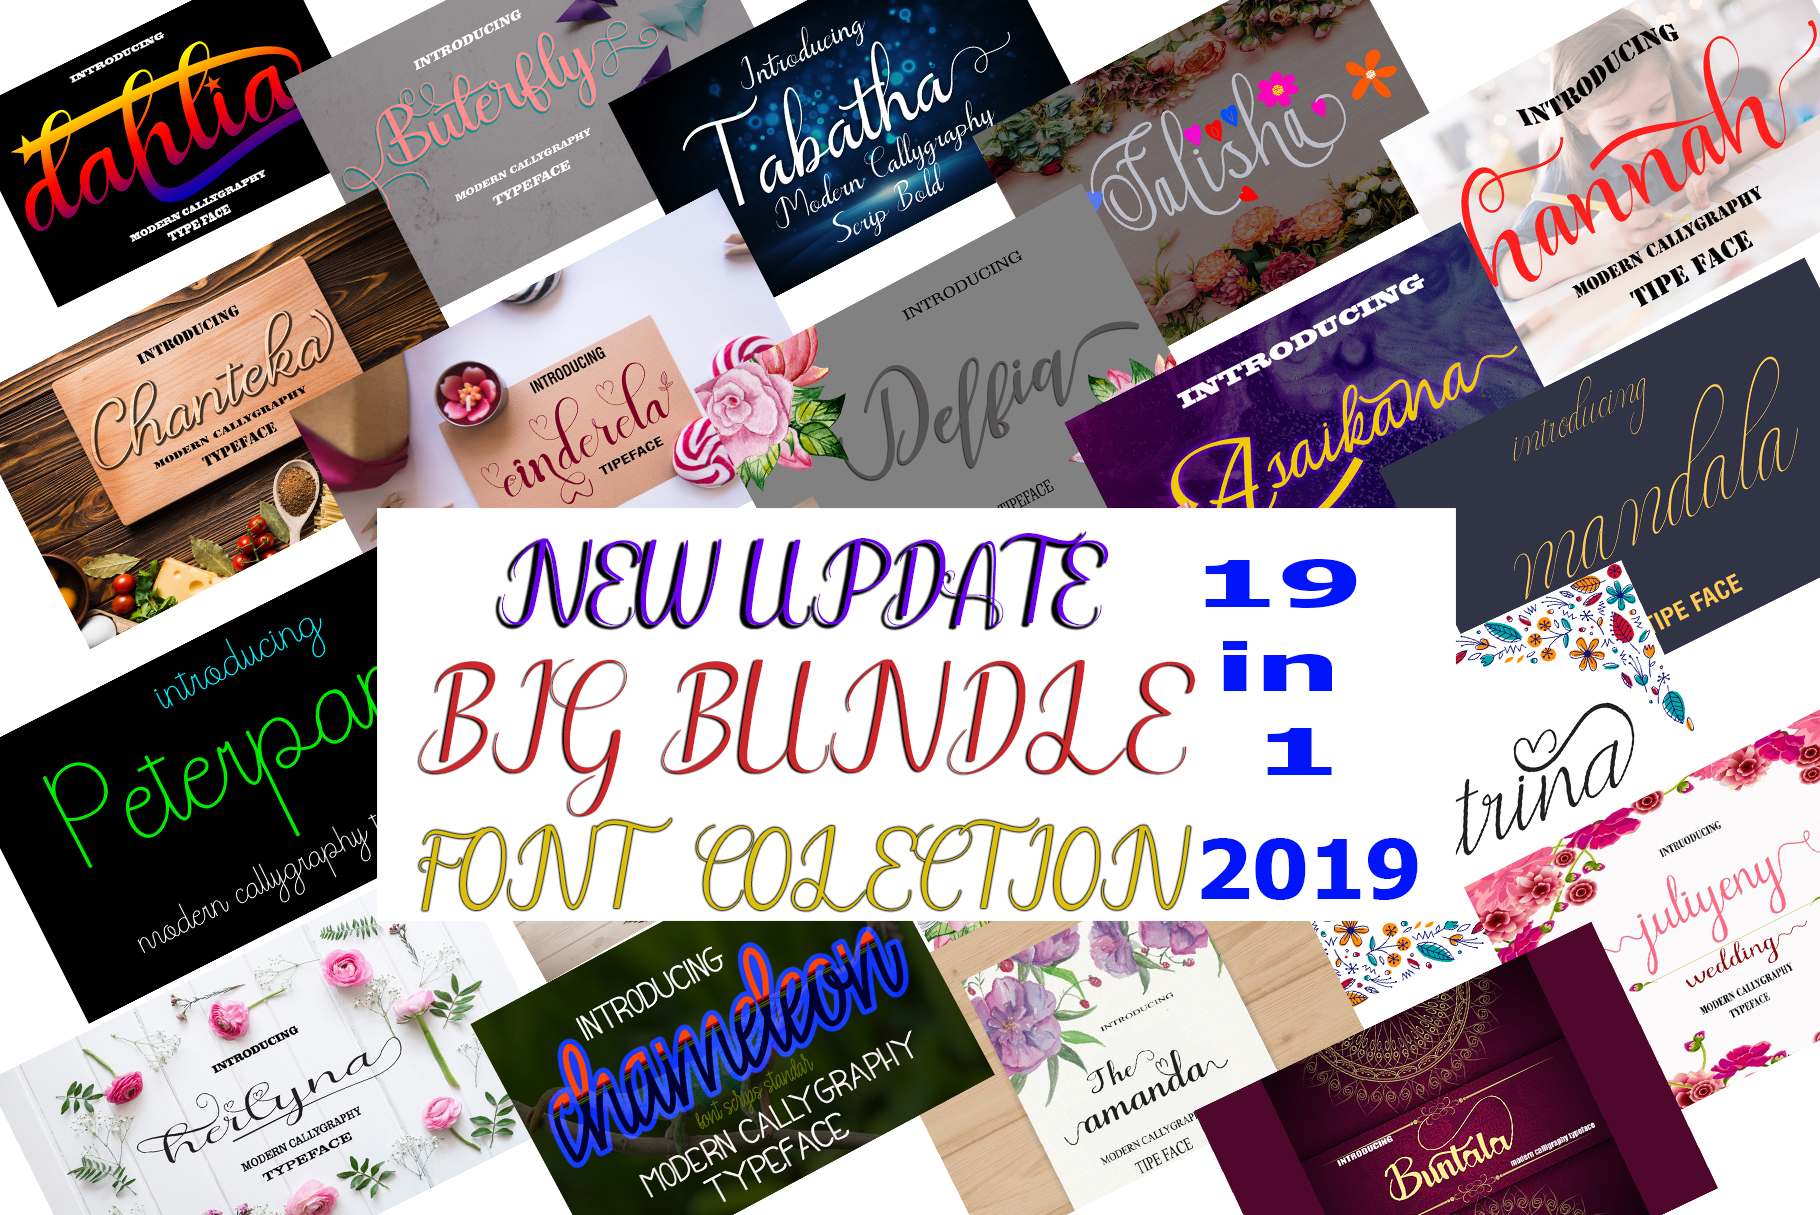 19 In 1 Font Colection 2019 -Bonuss 7 Font example image 1